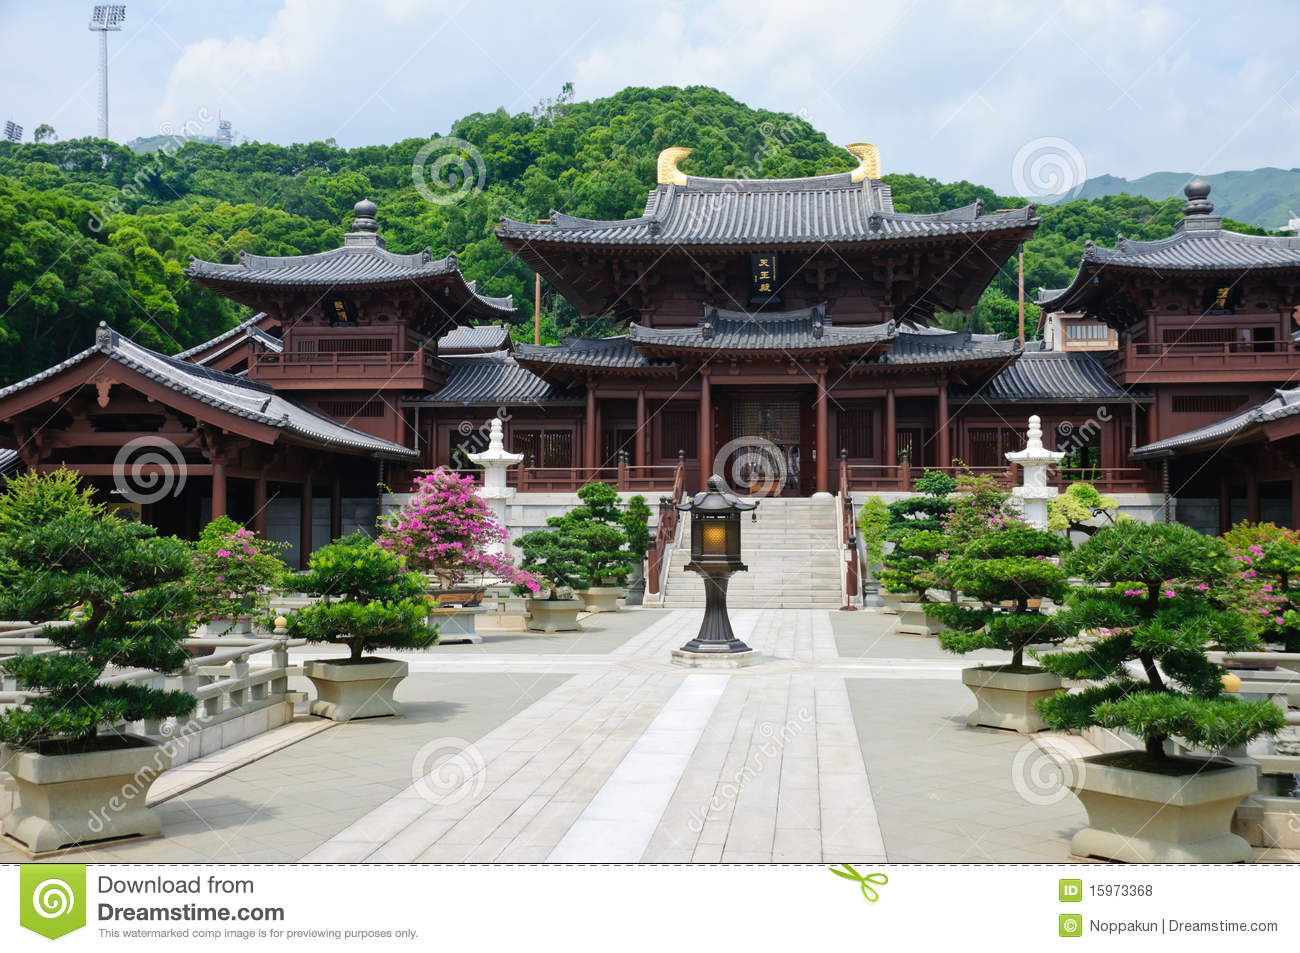 Chi lin Nunnery, Tang dynasty style Chinese temple